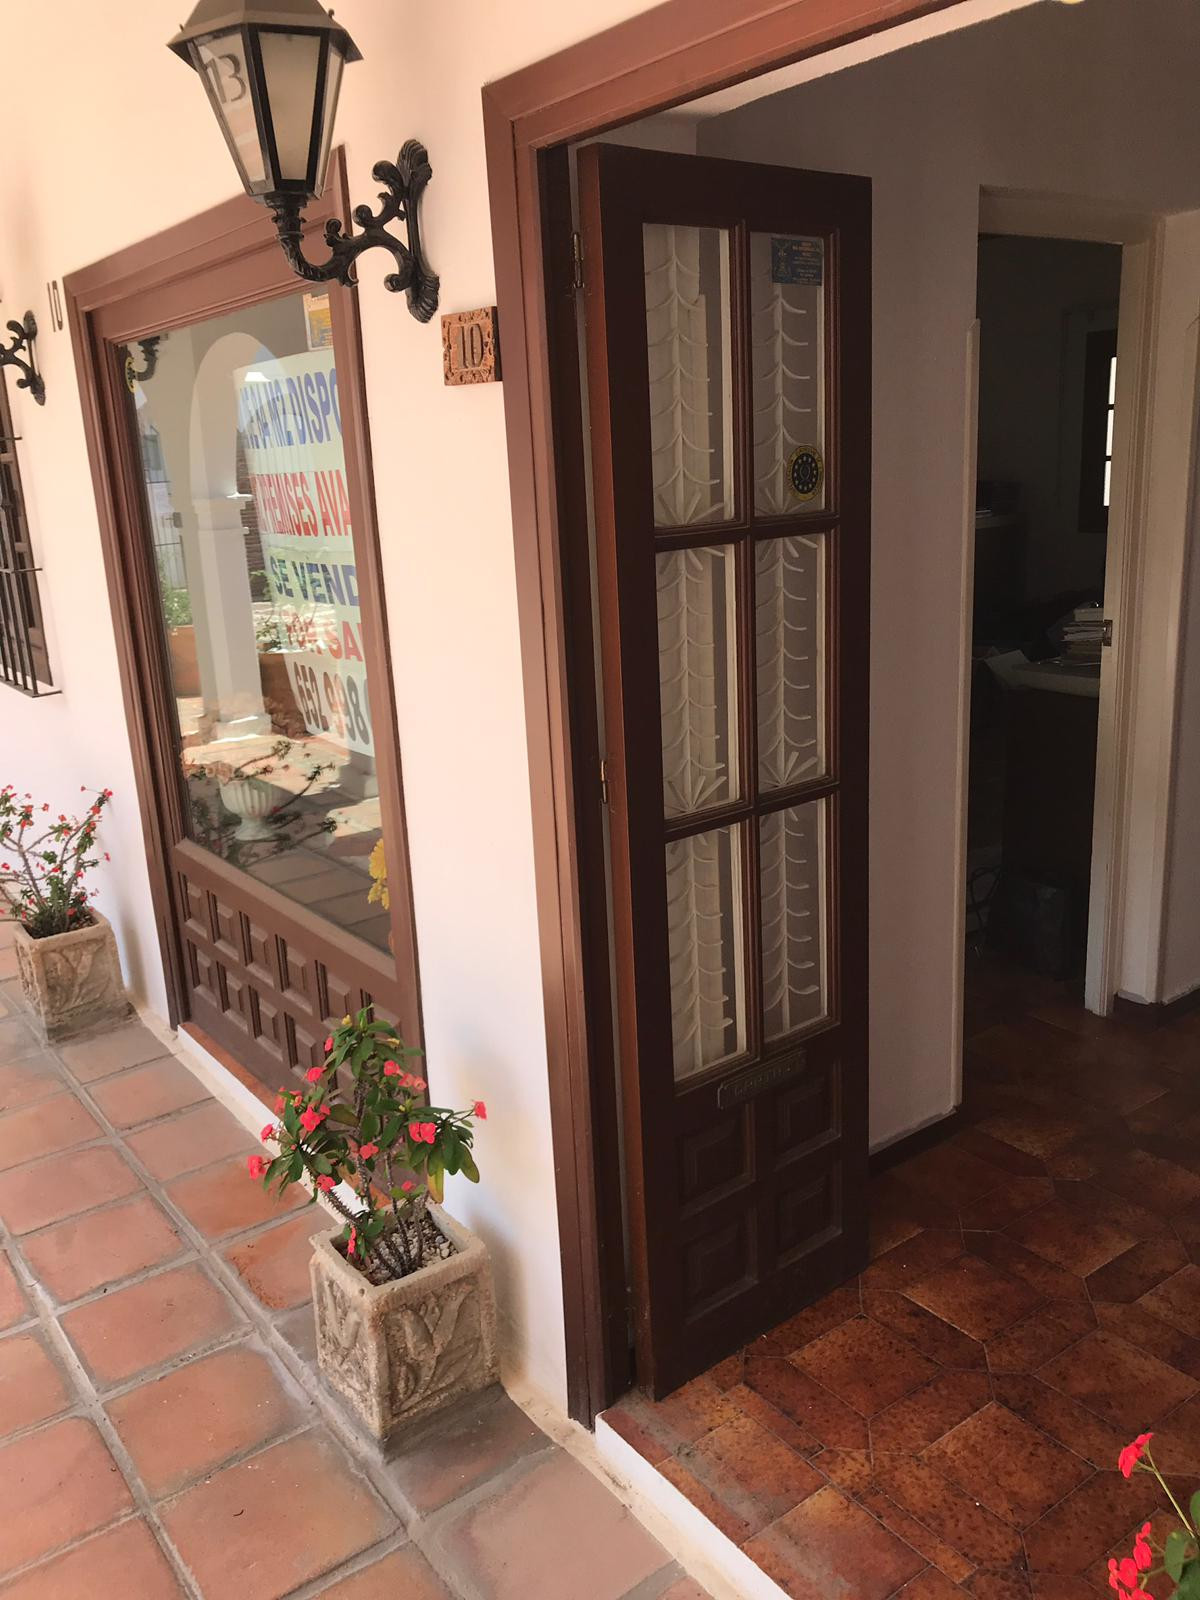 LOCAL OF 84 SQUARE METERS,UNITED THREE LOCALS IN ONE, THE LOCATION IS UNBEATABLE, IT IS IN THE CENTE,Spain